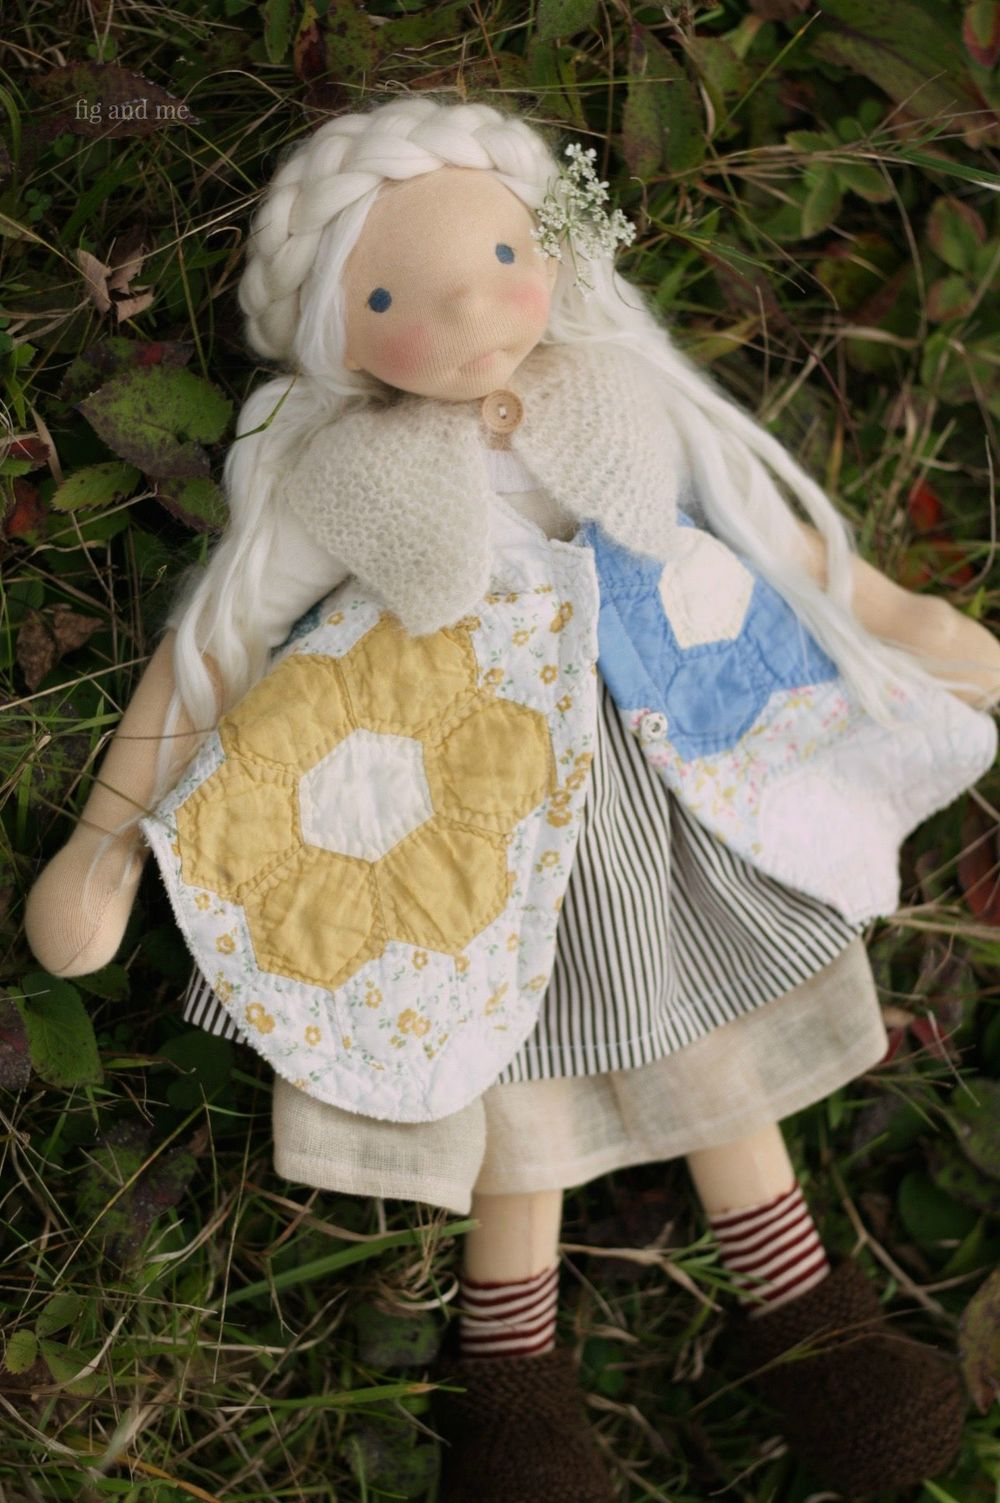 Feodora in her vintage hand-sewn hexagon quilt pinafore, wearing her cotton dress, her stripe socks and hand-knit boots, by Fig and me.